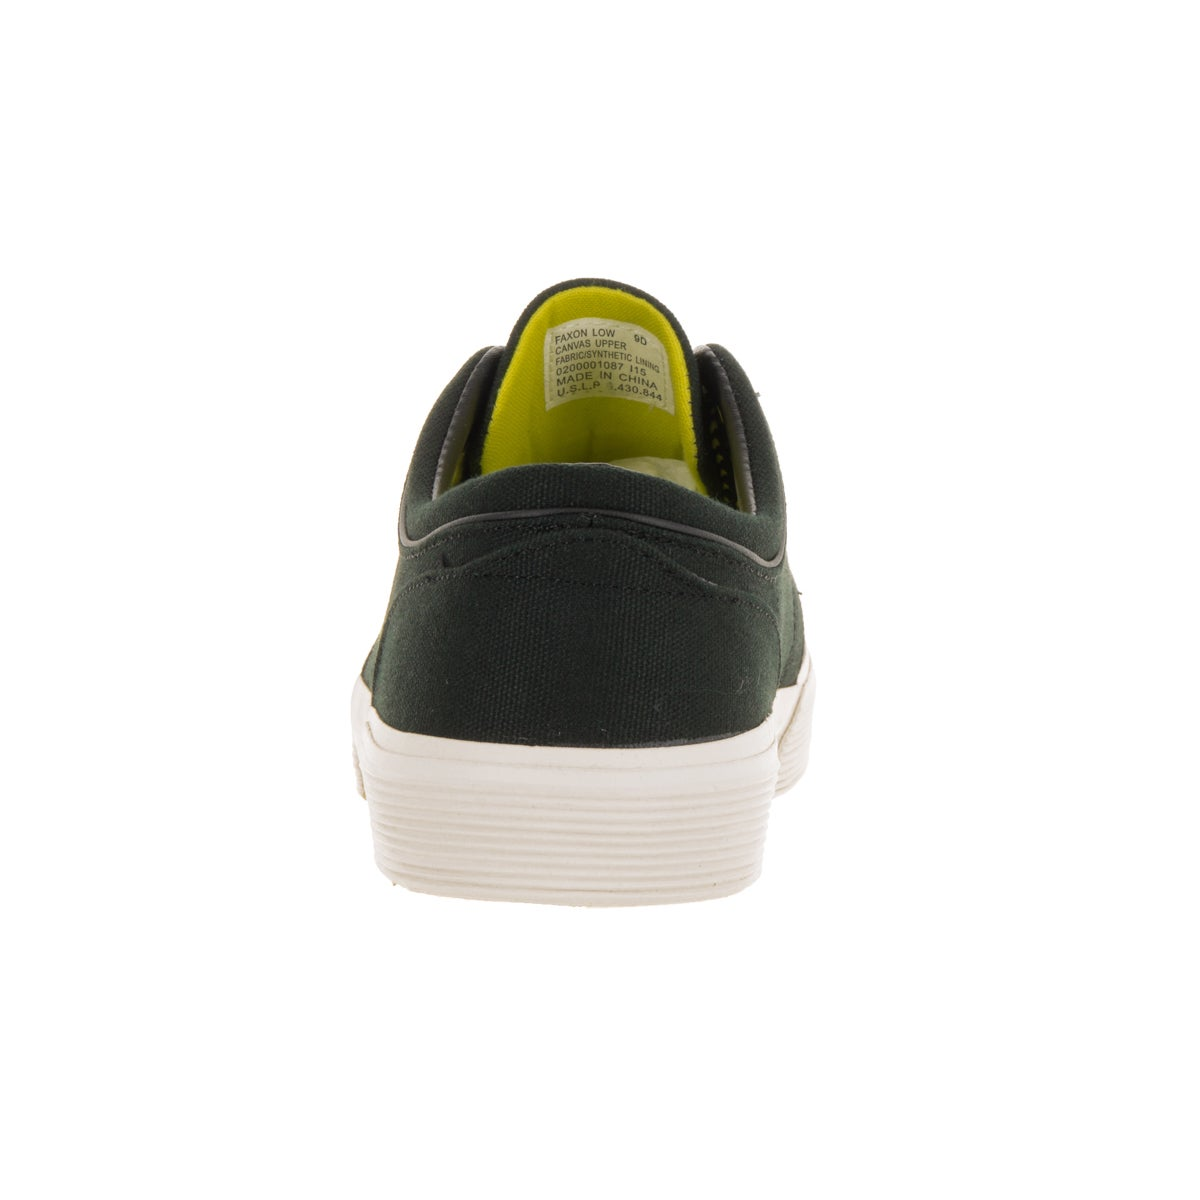 2a656705ede2a Shop Polo Ralph Lauren Men s Faxon Low Sk Black Yellow Casual Shoe - Free  Shipping Today - Overstock - 13395653